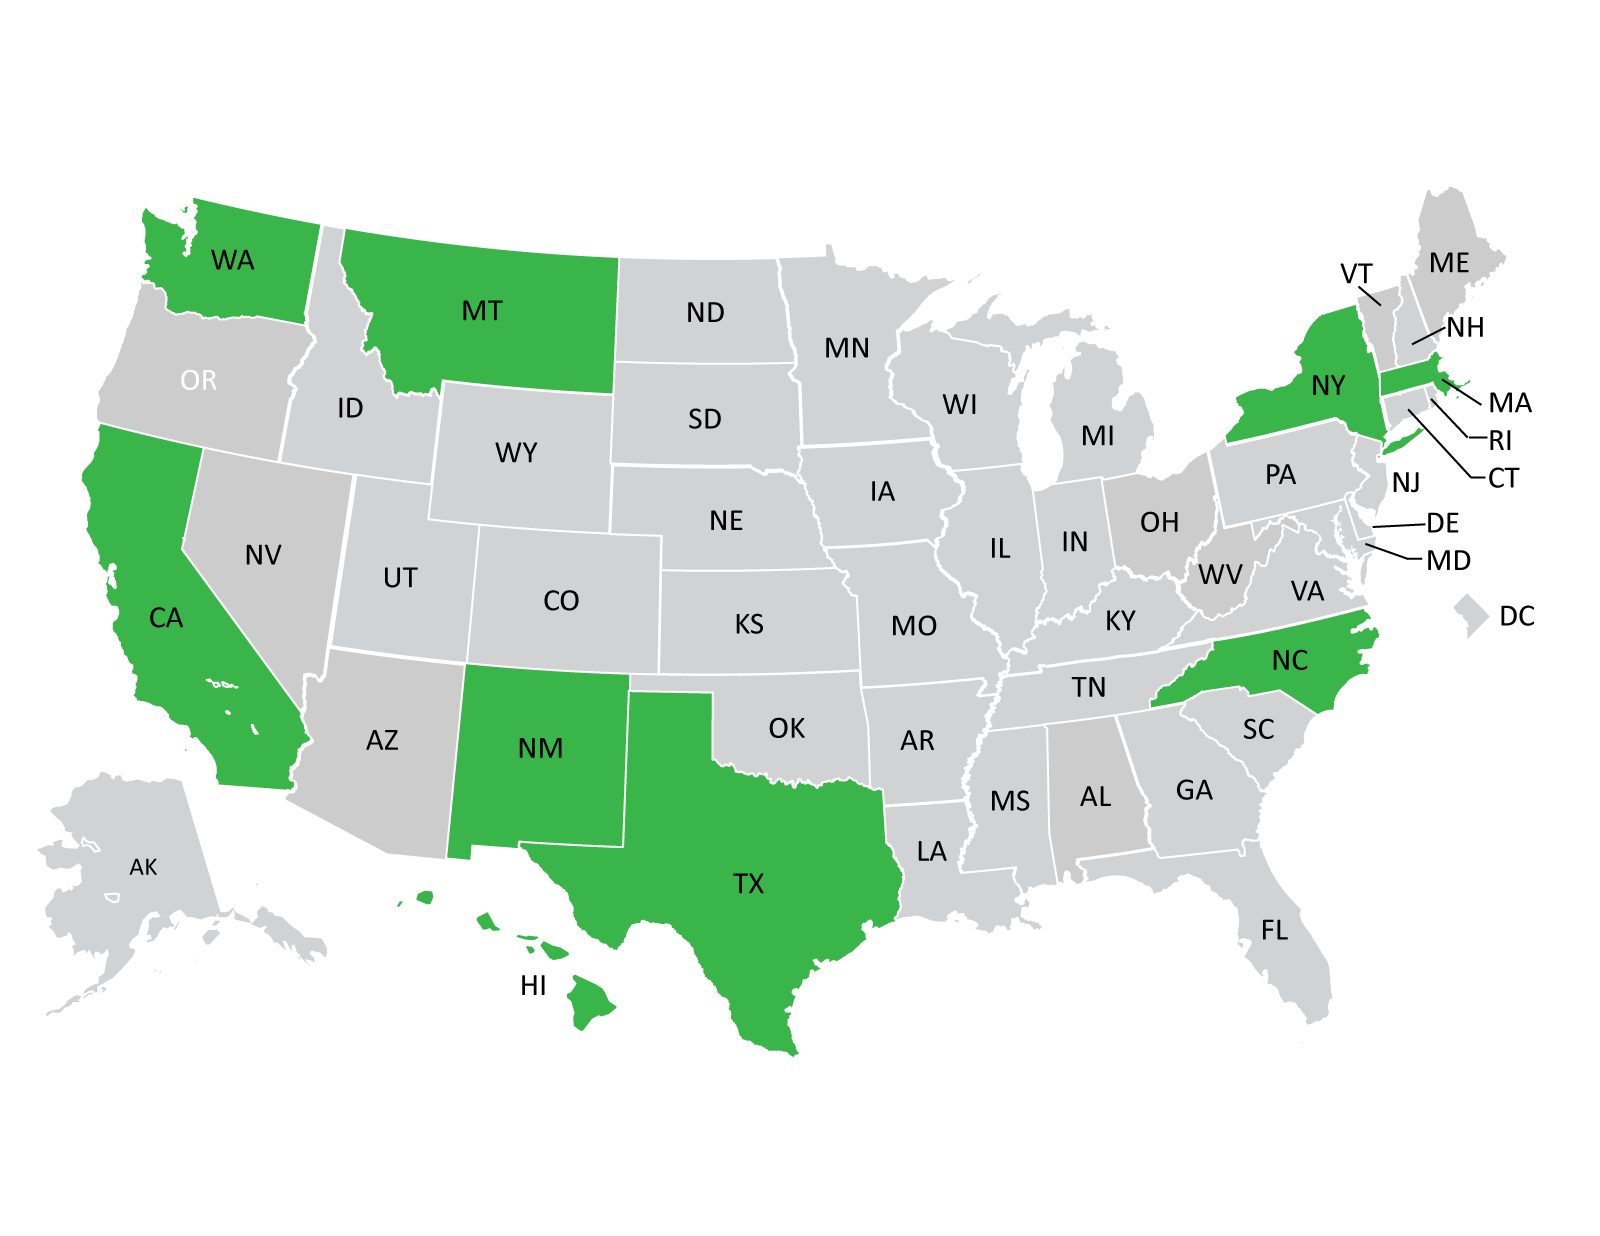 States involved in the RWJF Academic Progression in Nursing program